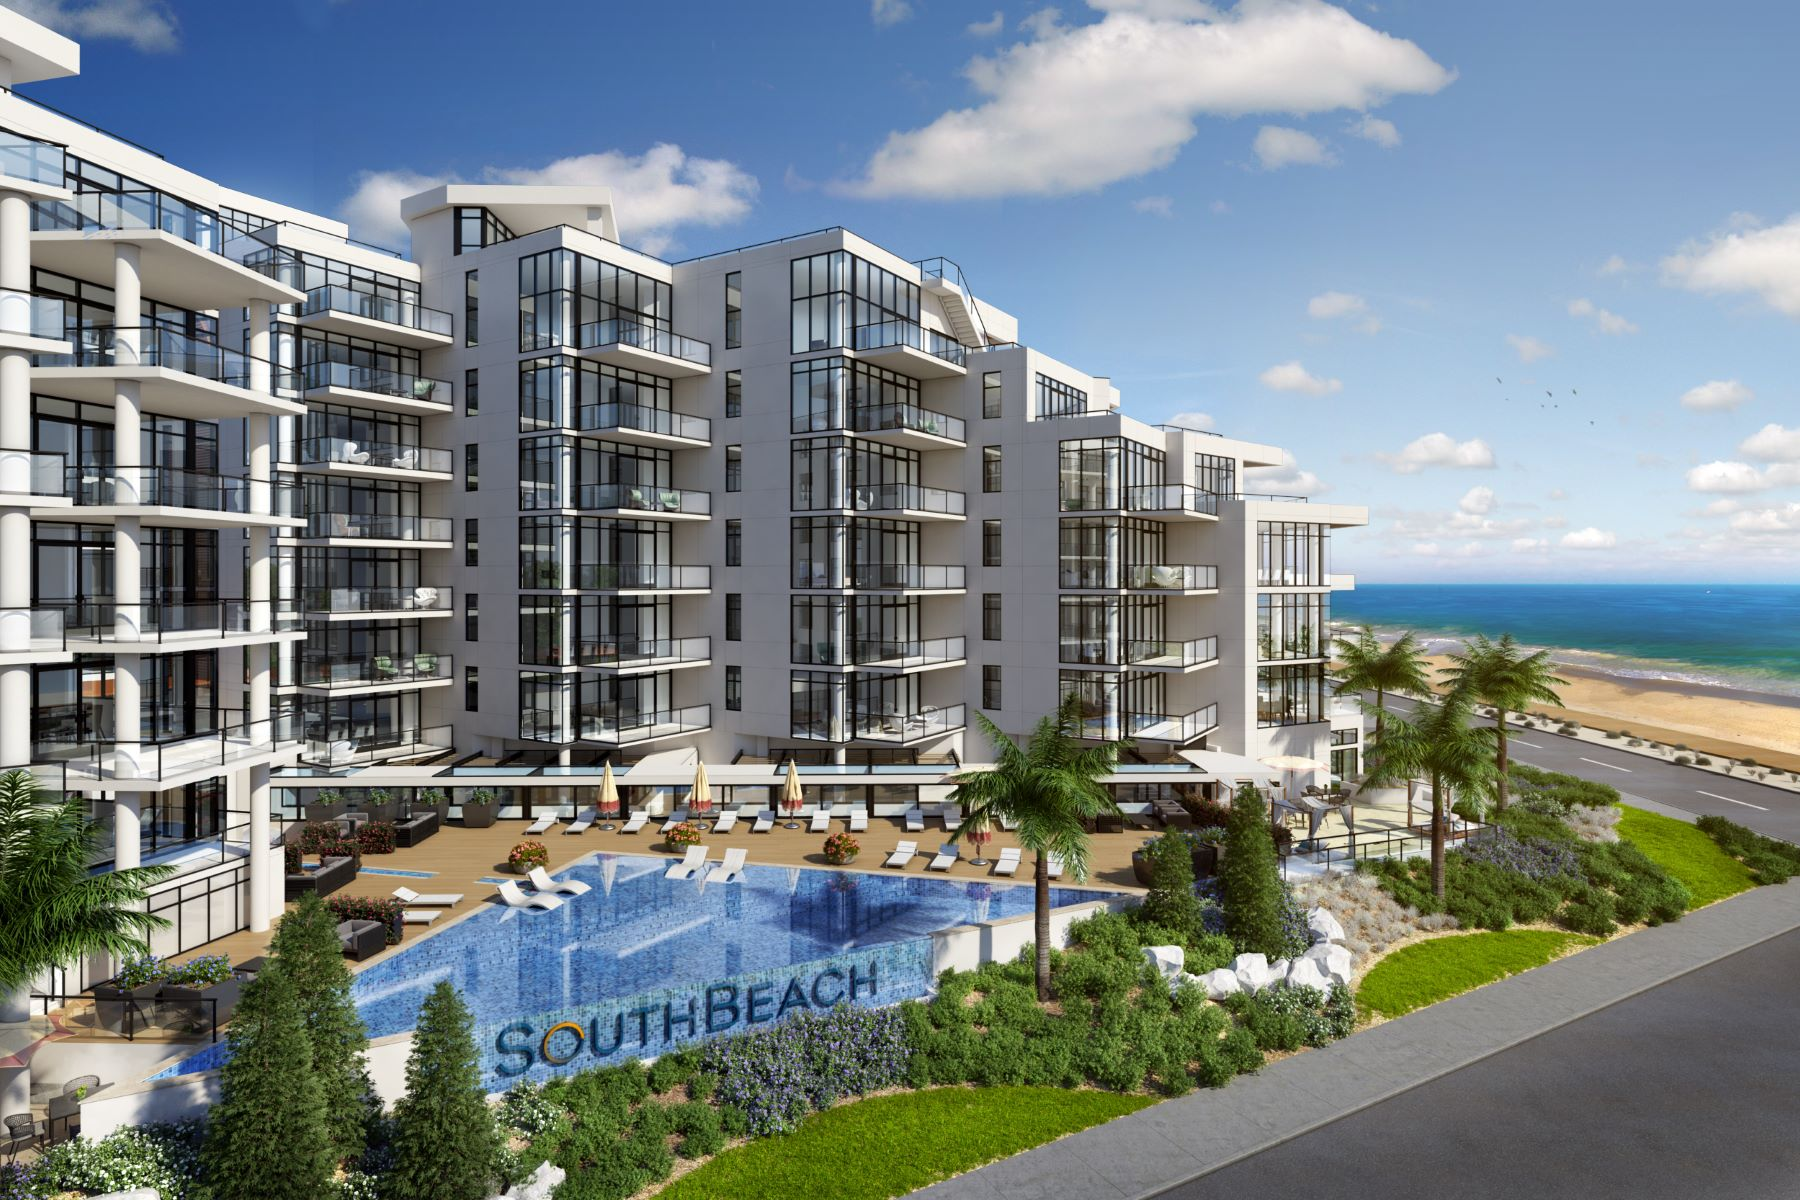 Condominiums for Sale at South Beach at Long Branch 350 Ocean Avenue 702 Long Branch, New Jersey 07740 United States